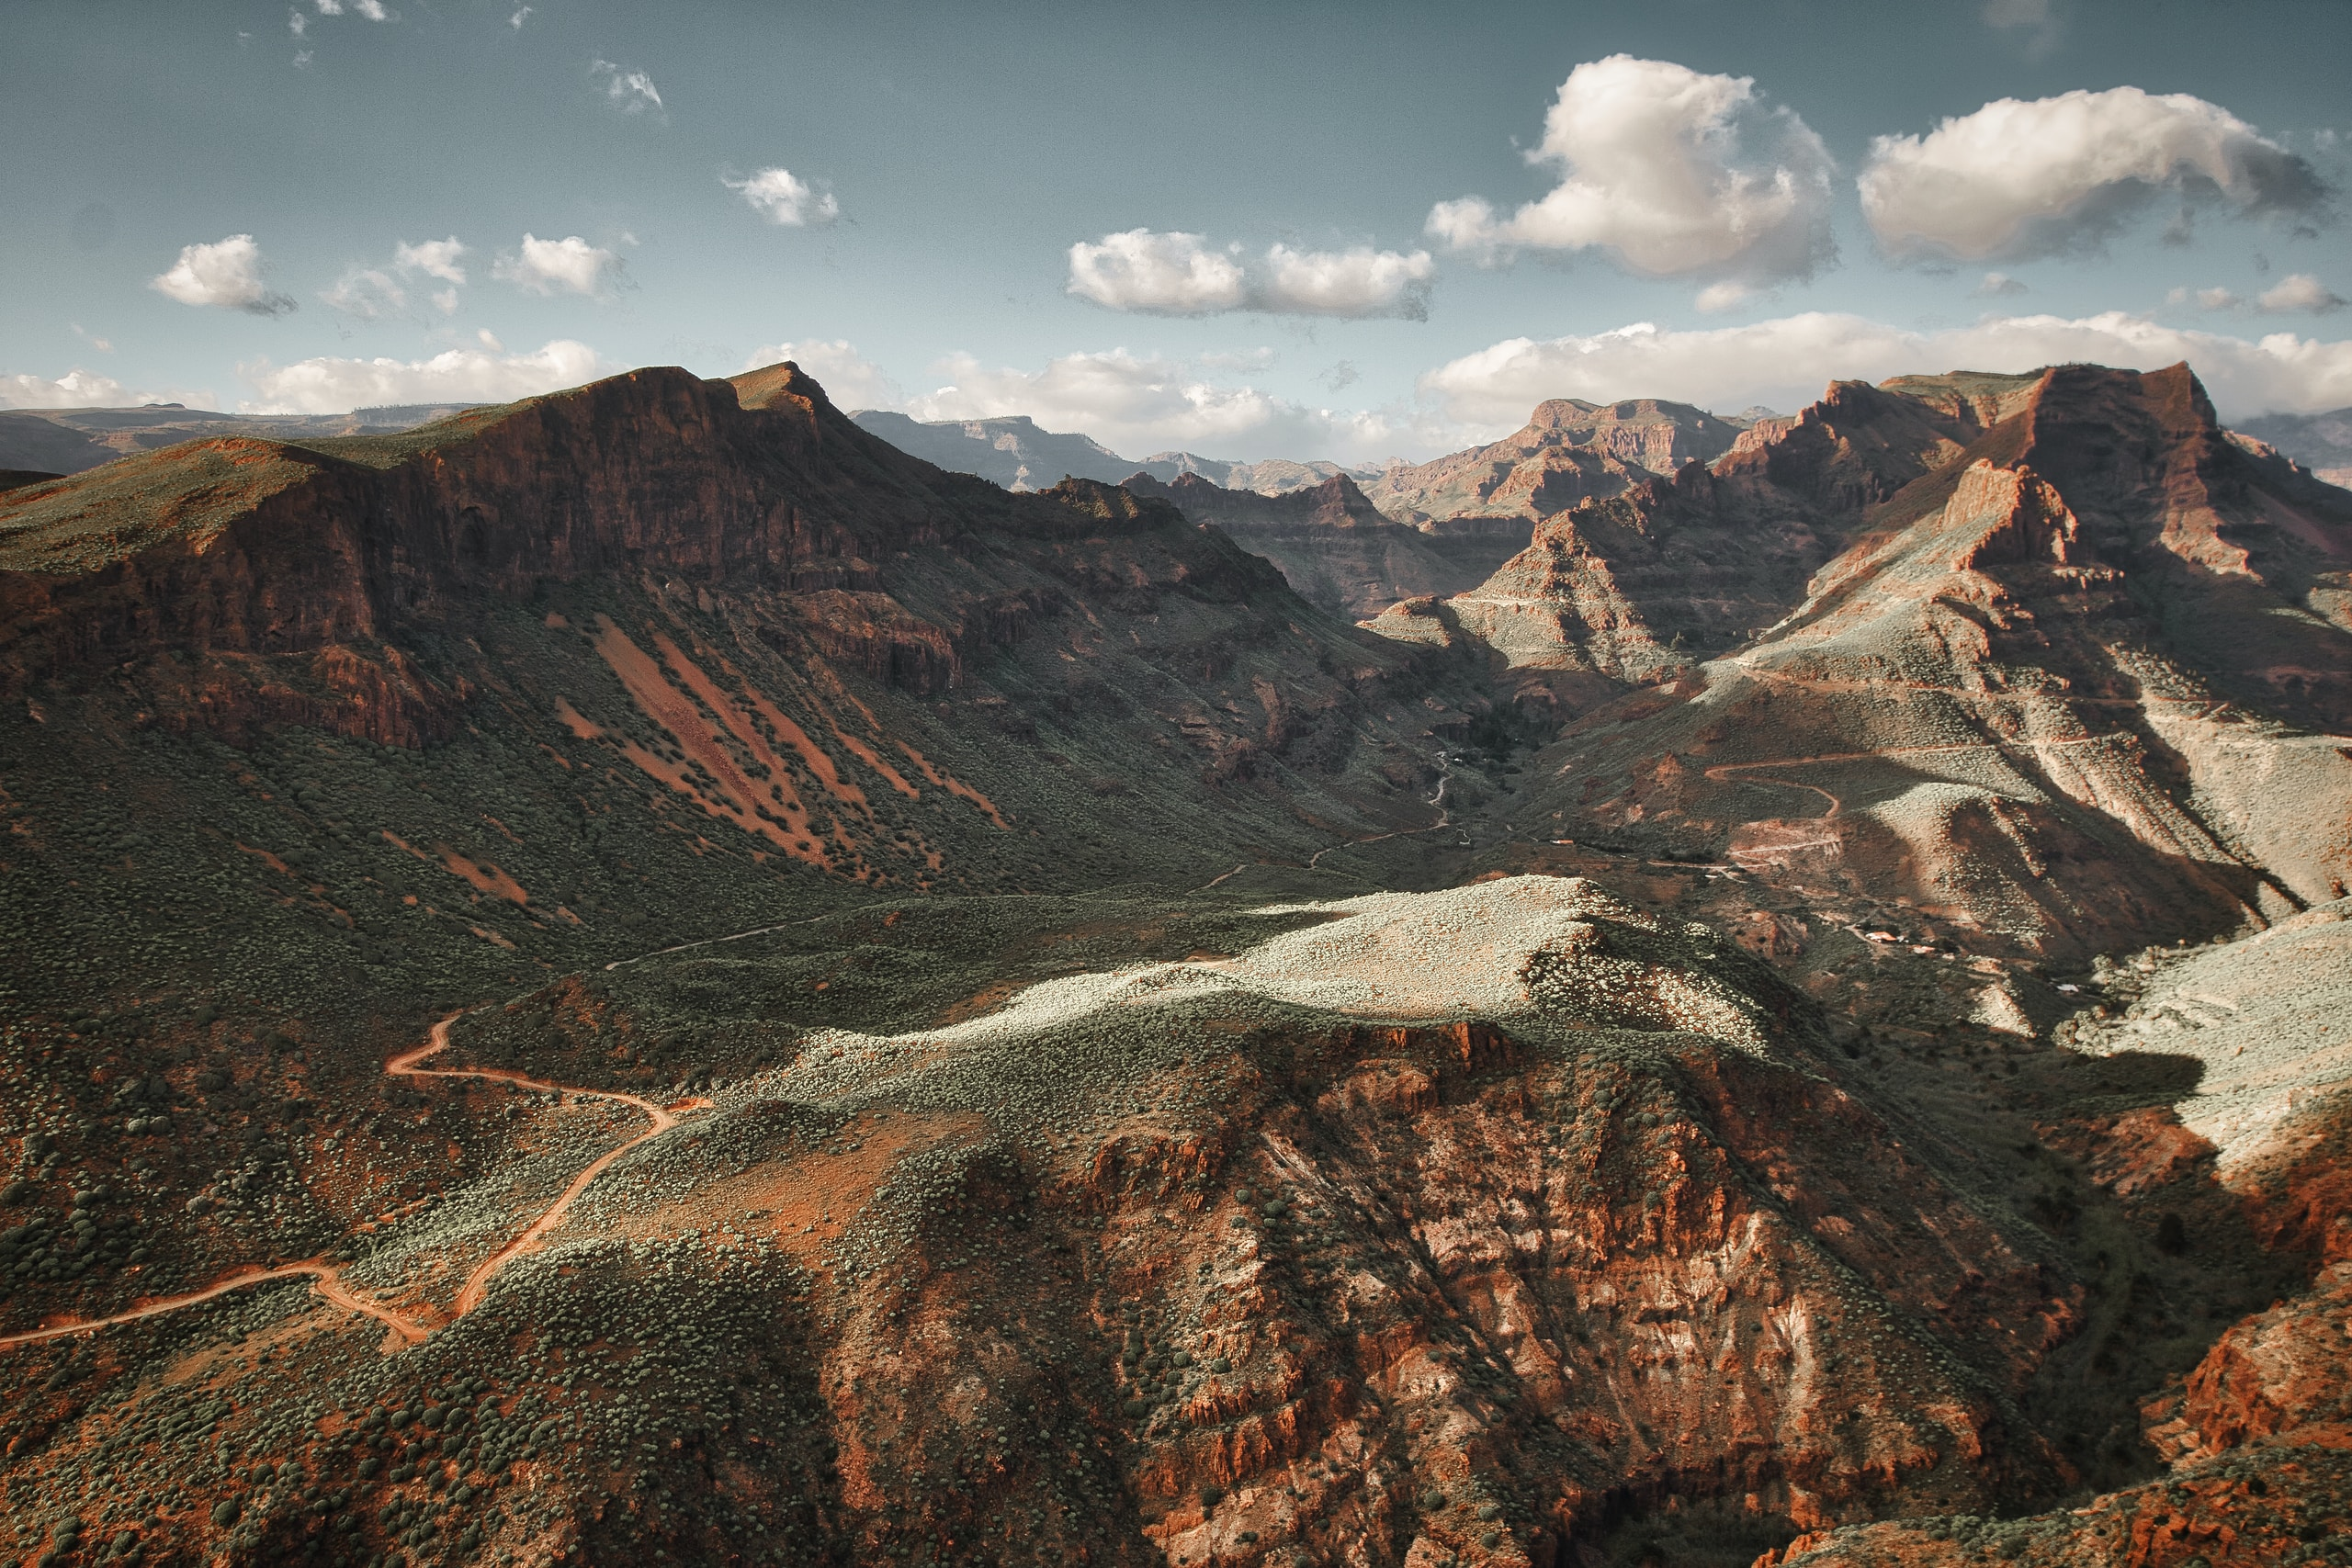 Panoramic view of the Fataga valley from the Degollada de las Yeguas viewpoint in south Gran Canaria. A winding, fifteen kilometre canyon with smooth sides and breathtaking sharp, almost vertical ridges.